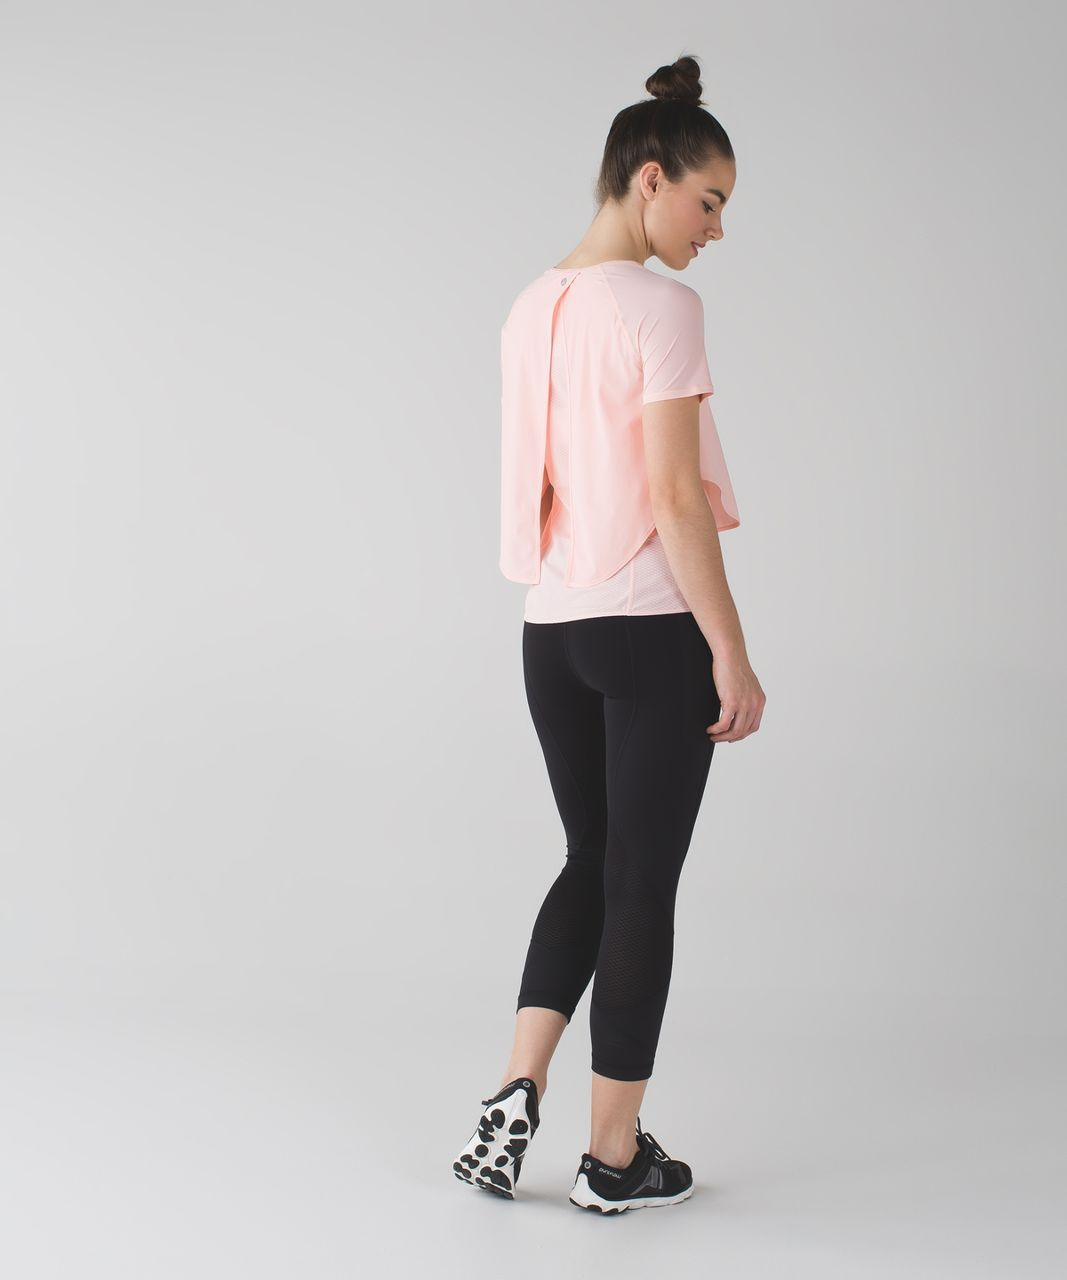 Lululemon Cover Me Tee - Minty Pink